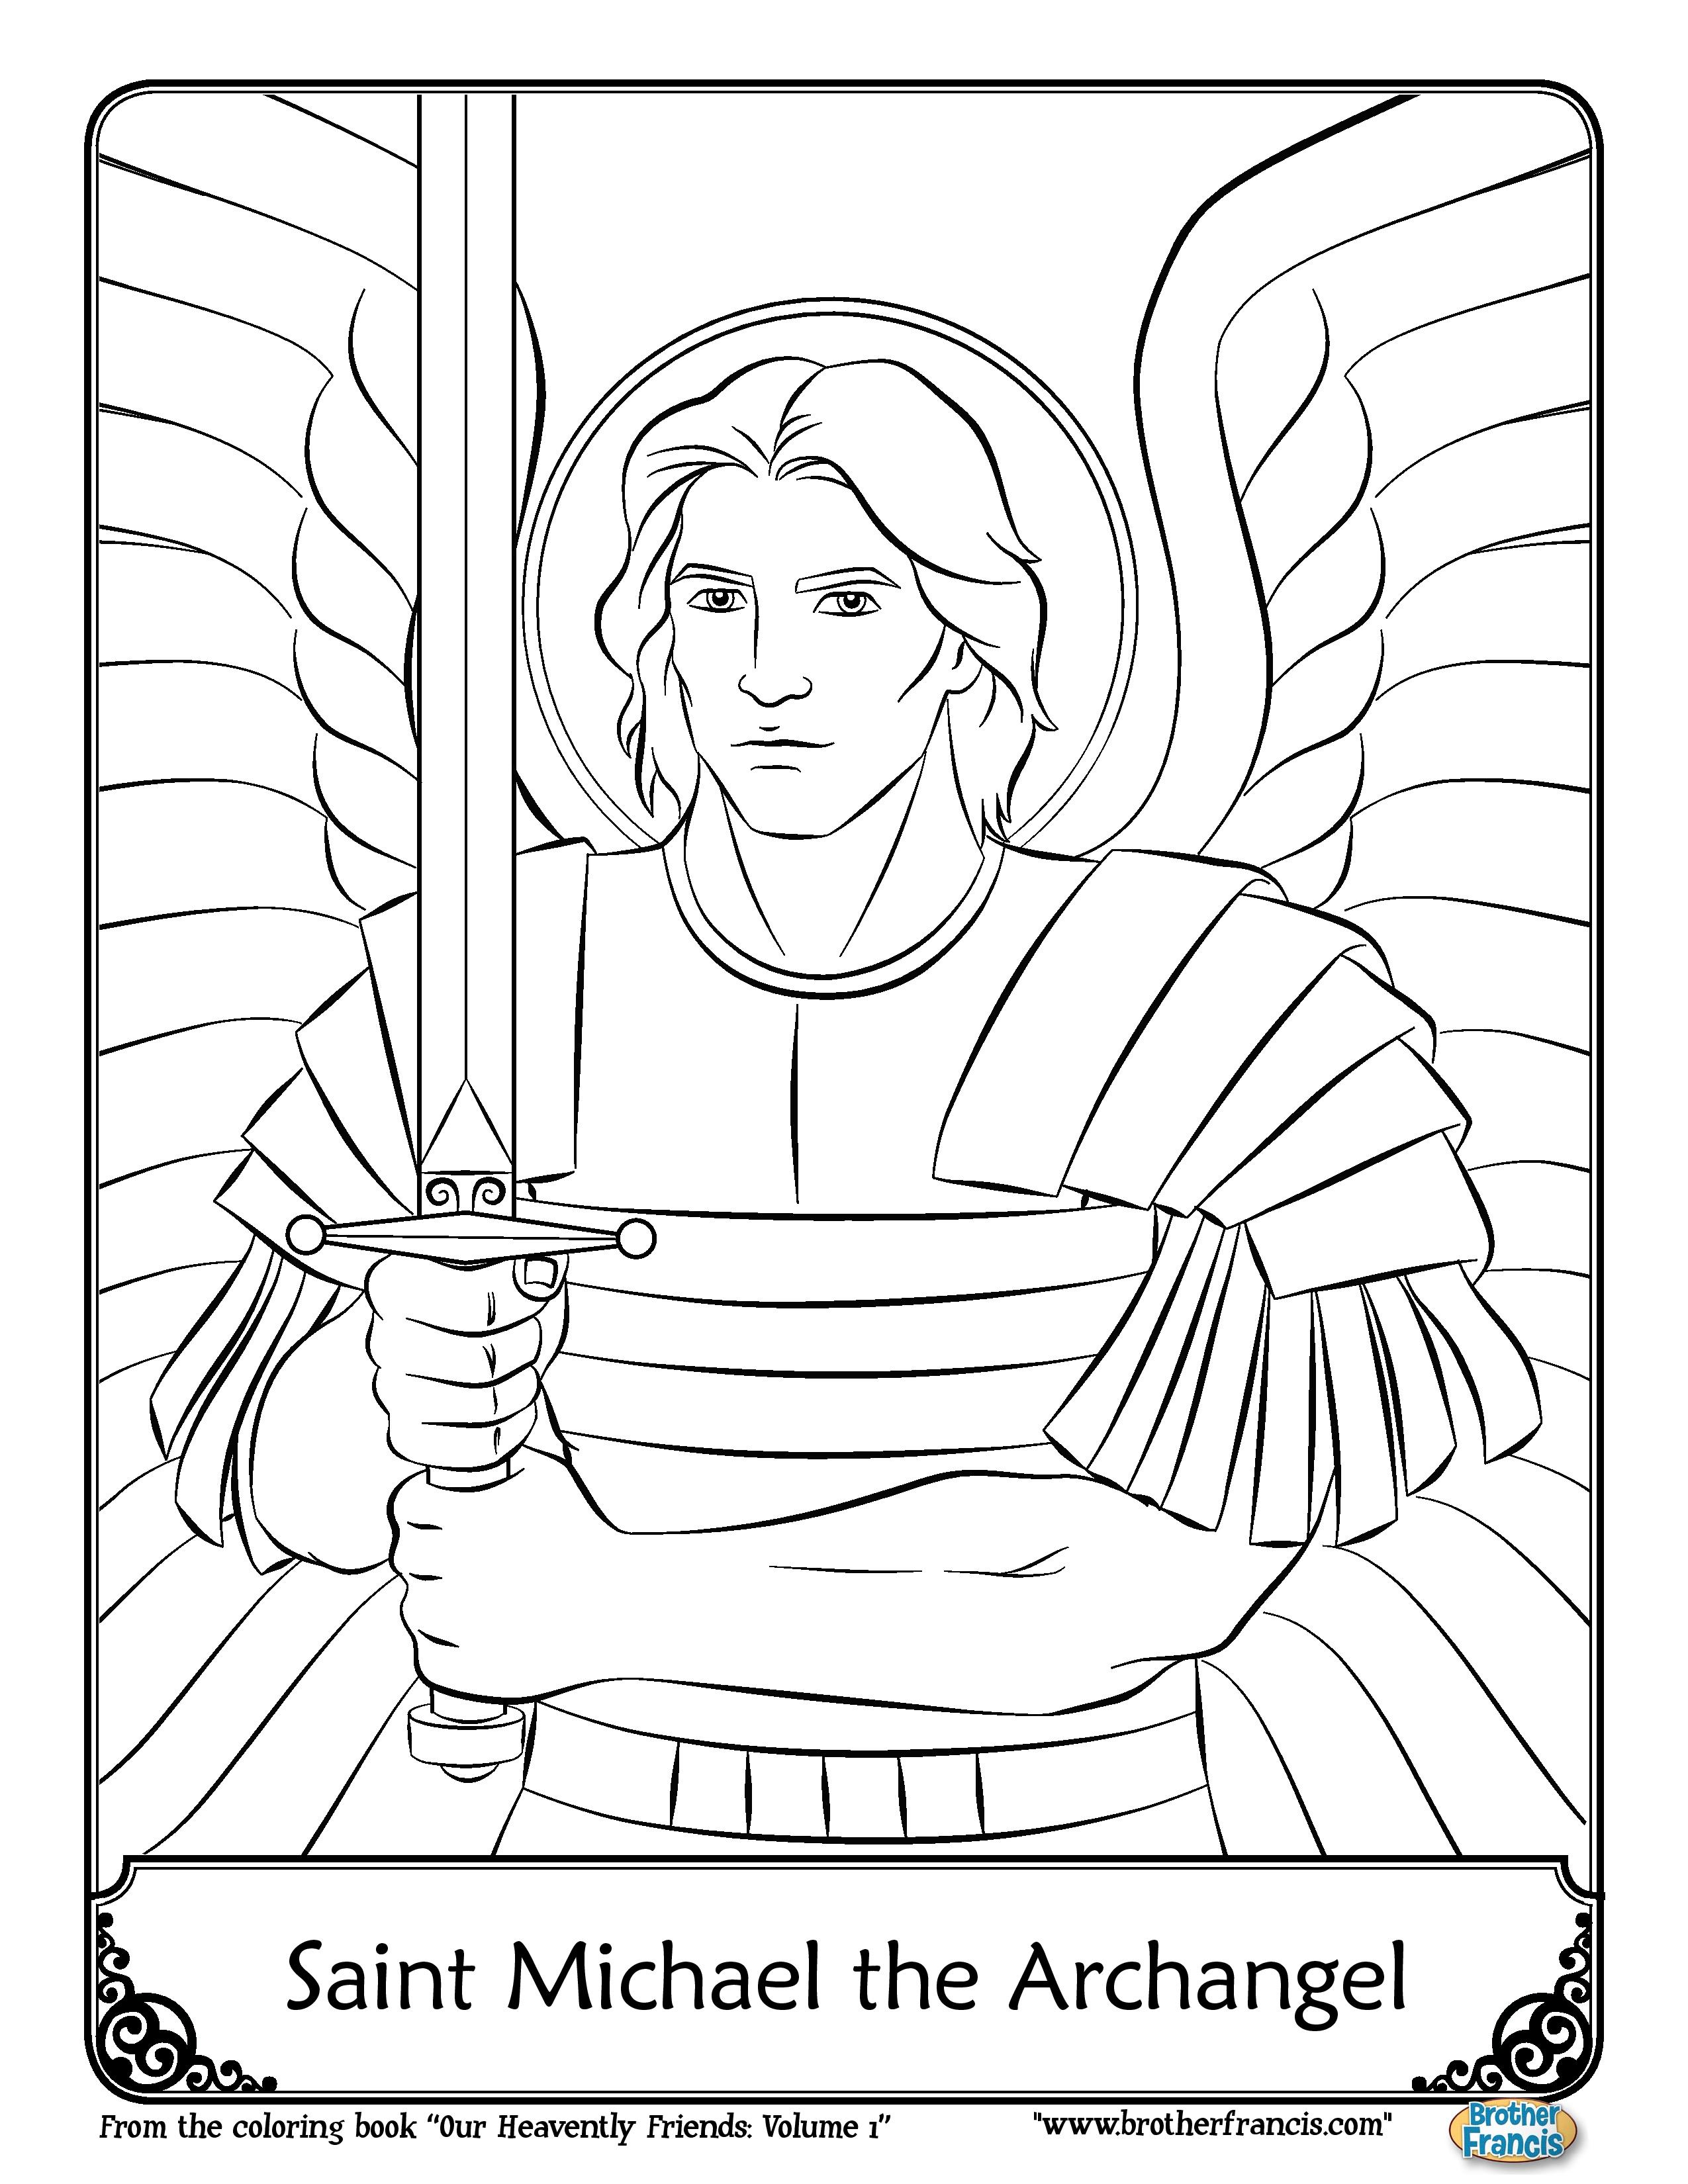 September 29_saint-michael-the-archangel-coloring-page-brother-francis-page-001